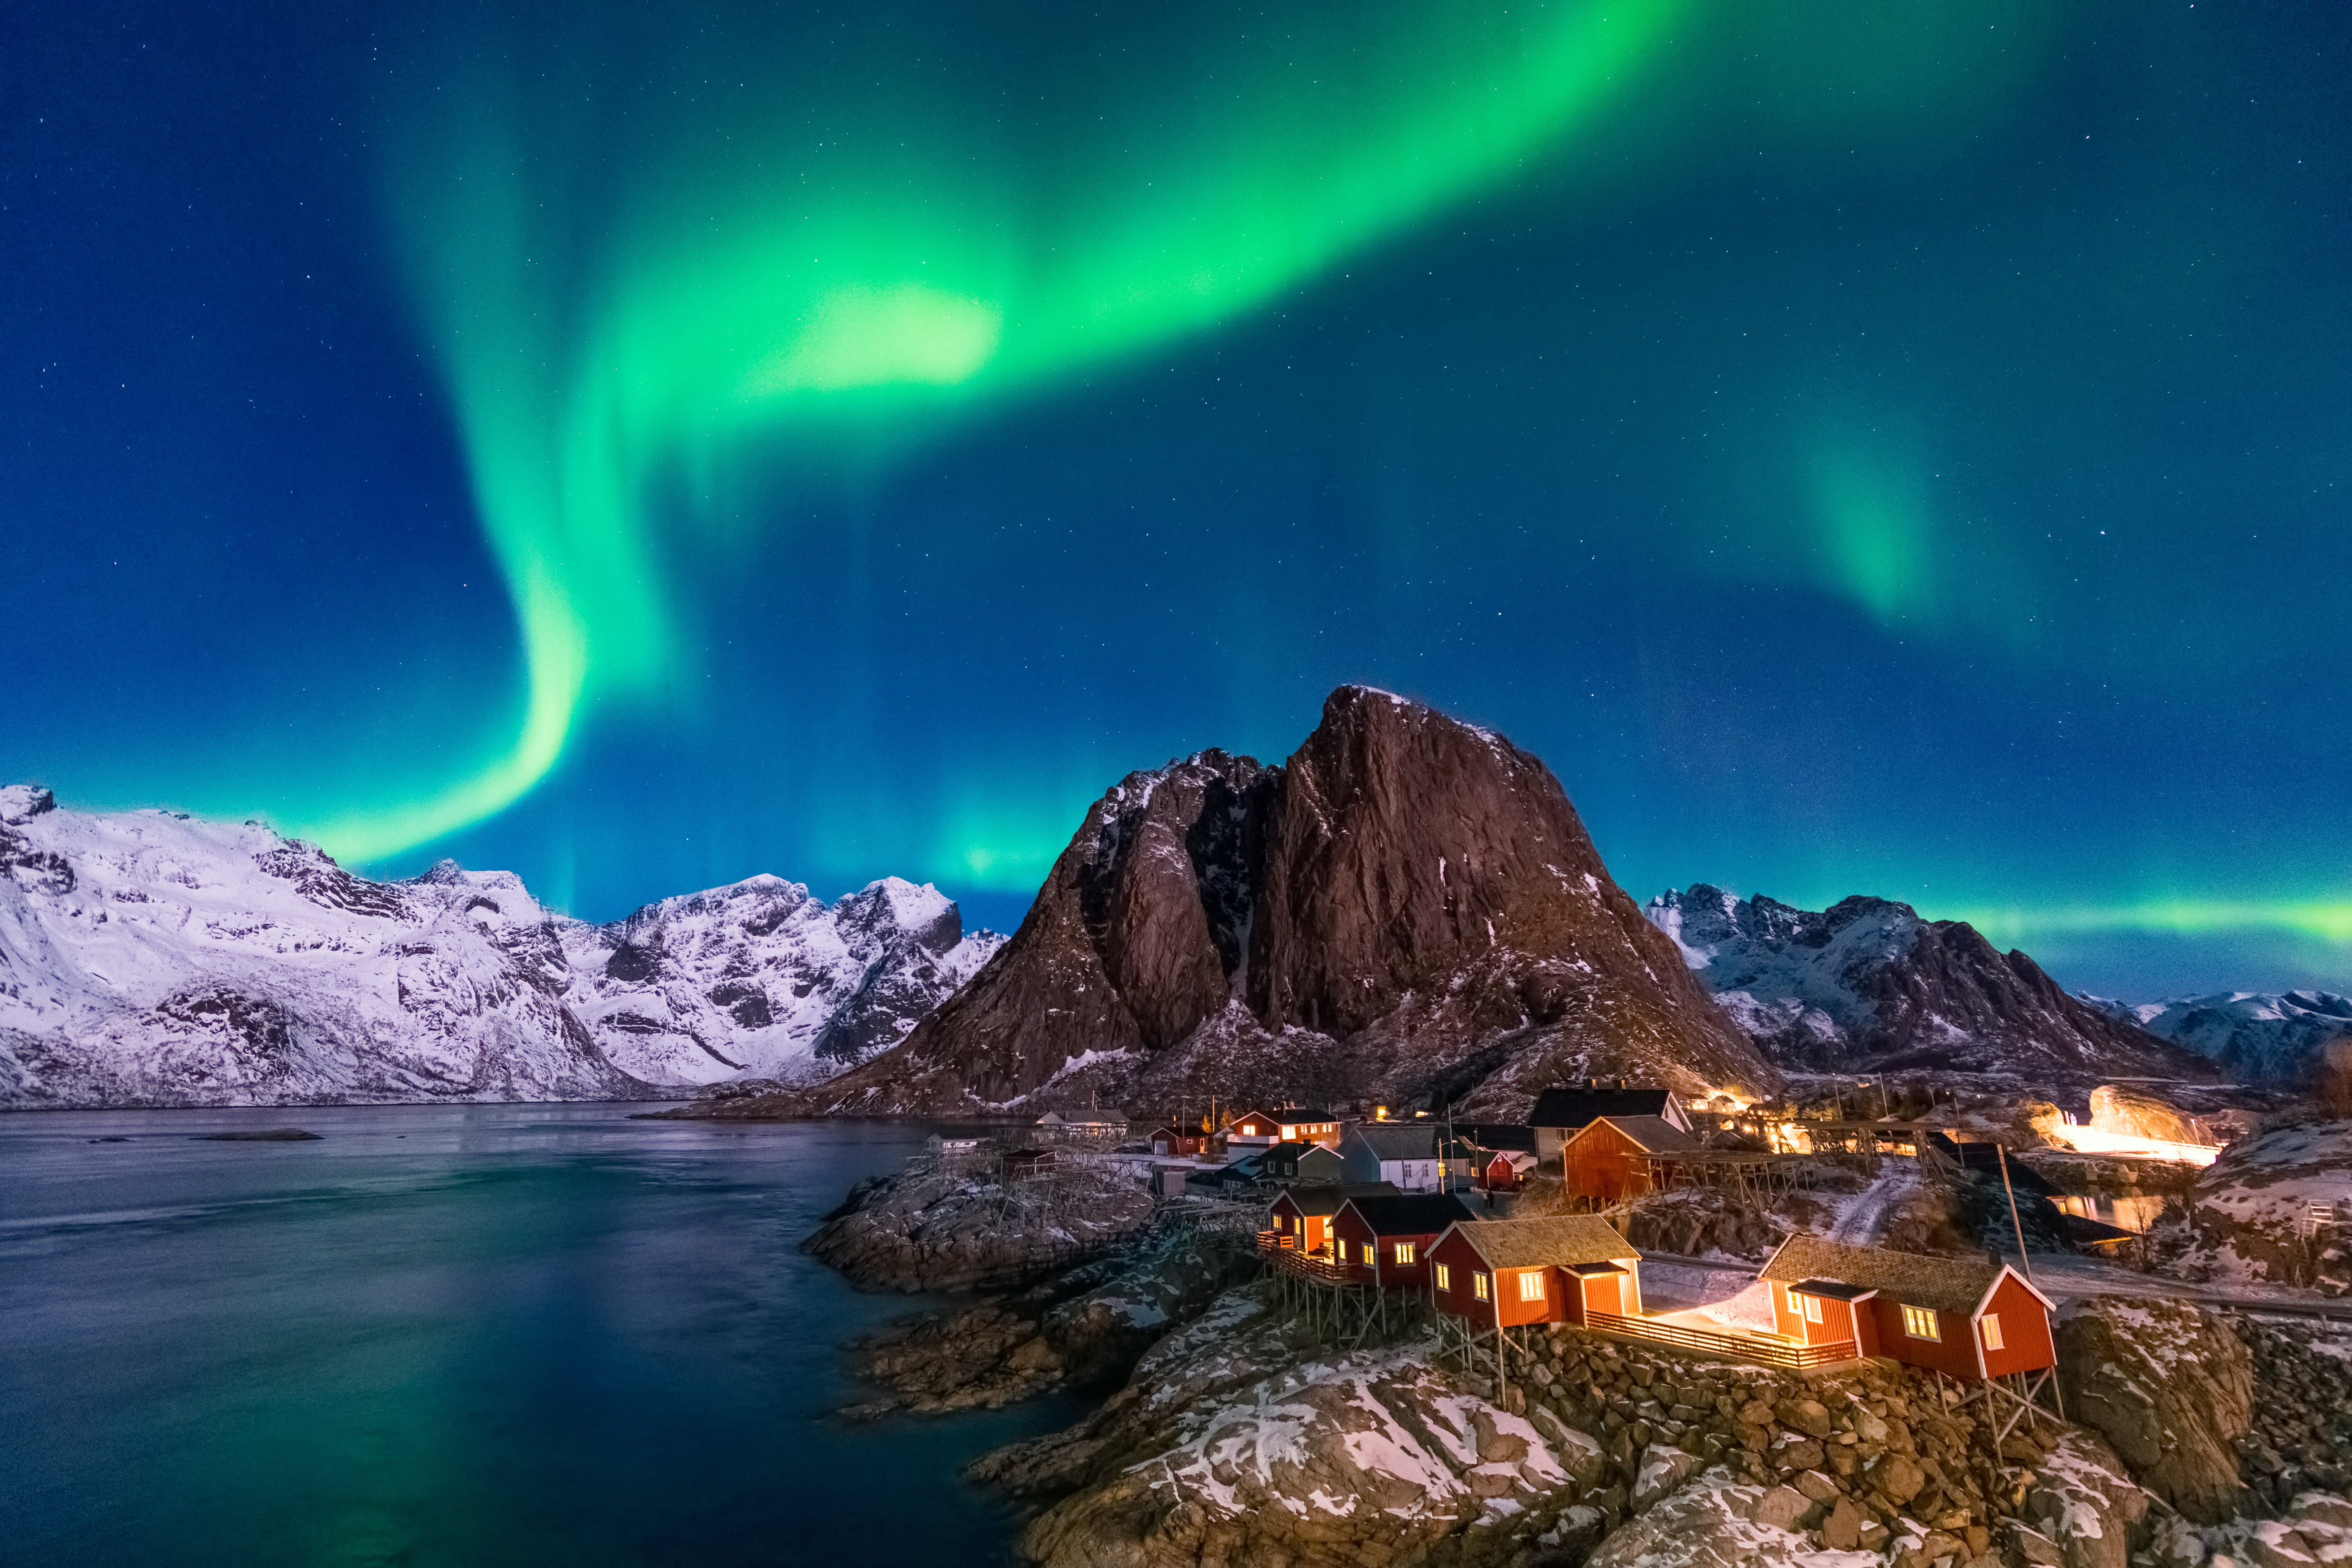 Northern Lights (Aurora Borealis) above the iconic view of the famous picturesque fishing village of Hamnoy (Hamnøy), Lofoten islands, Norway in winter.